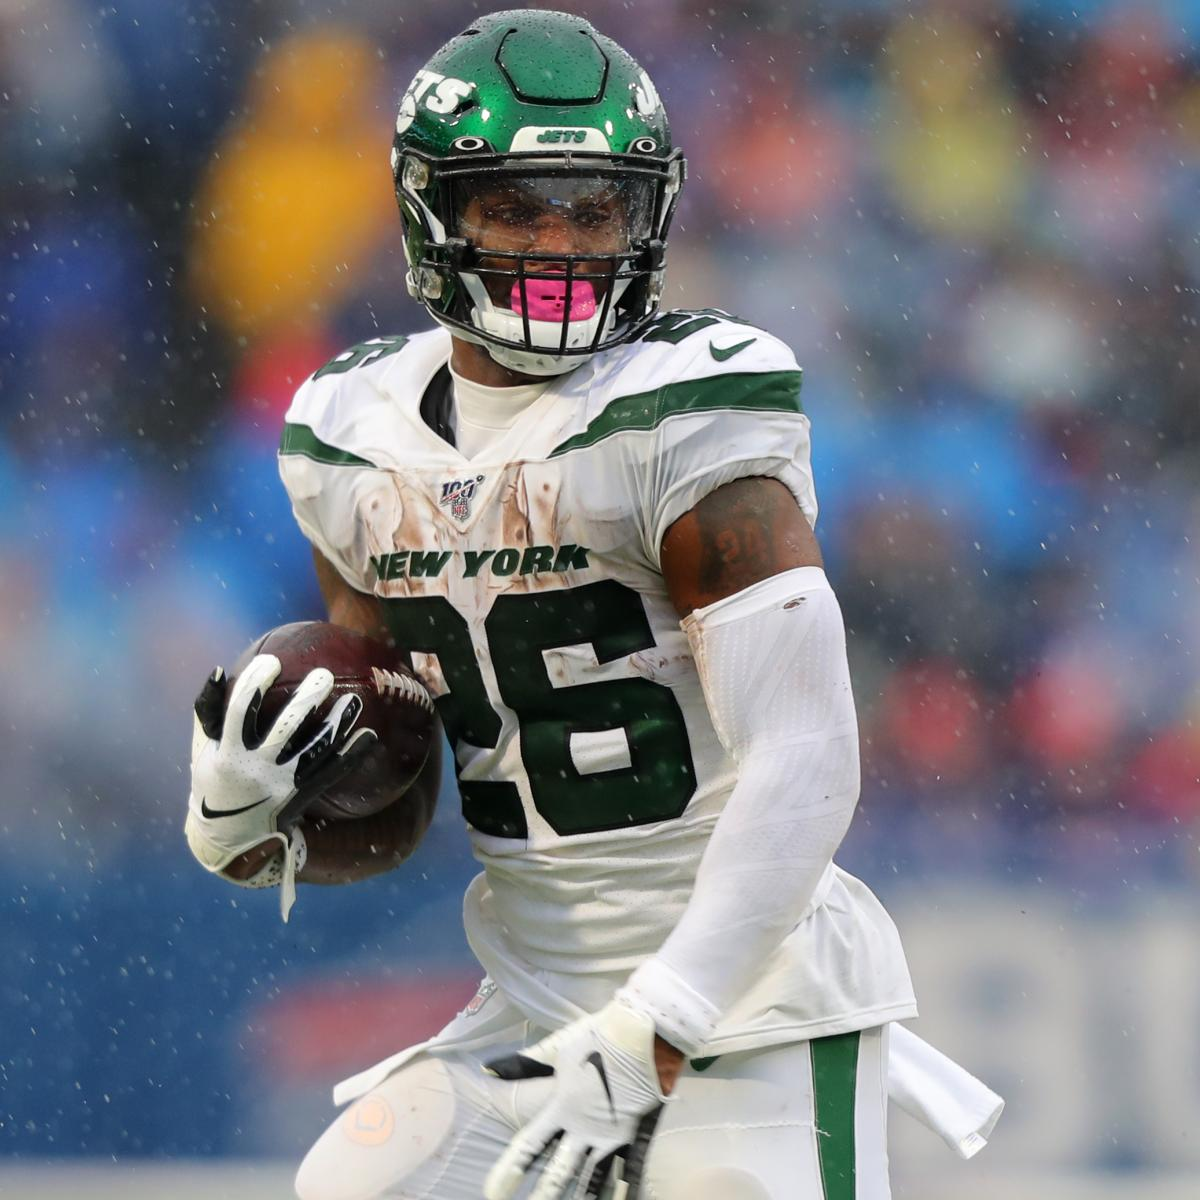 Jets Haven't Engaged in Le'Veon Bell Trade Talks, Says GM Joe Douglas